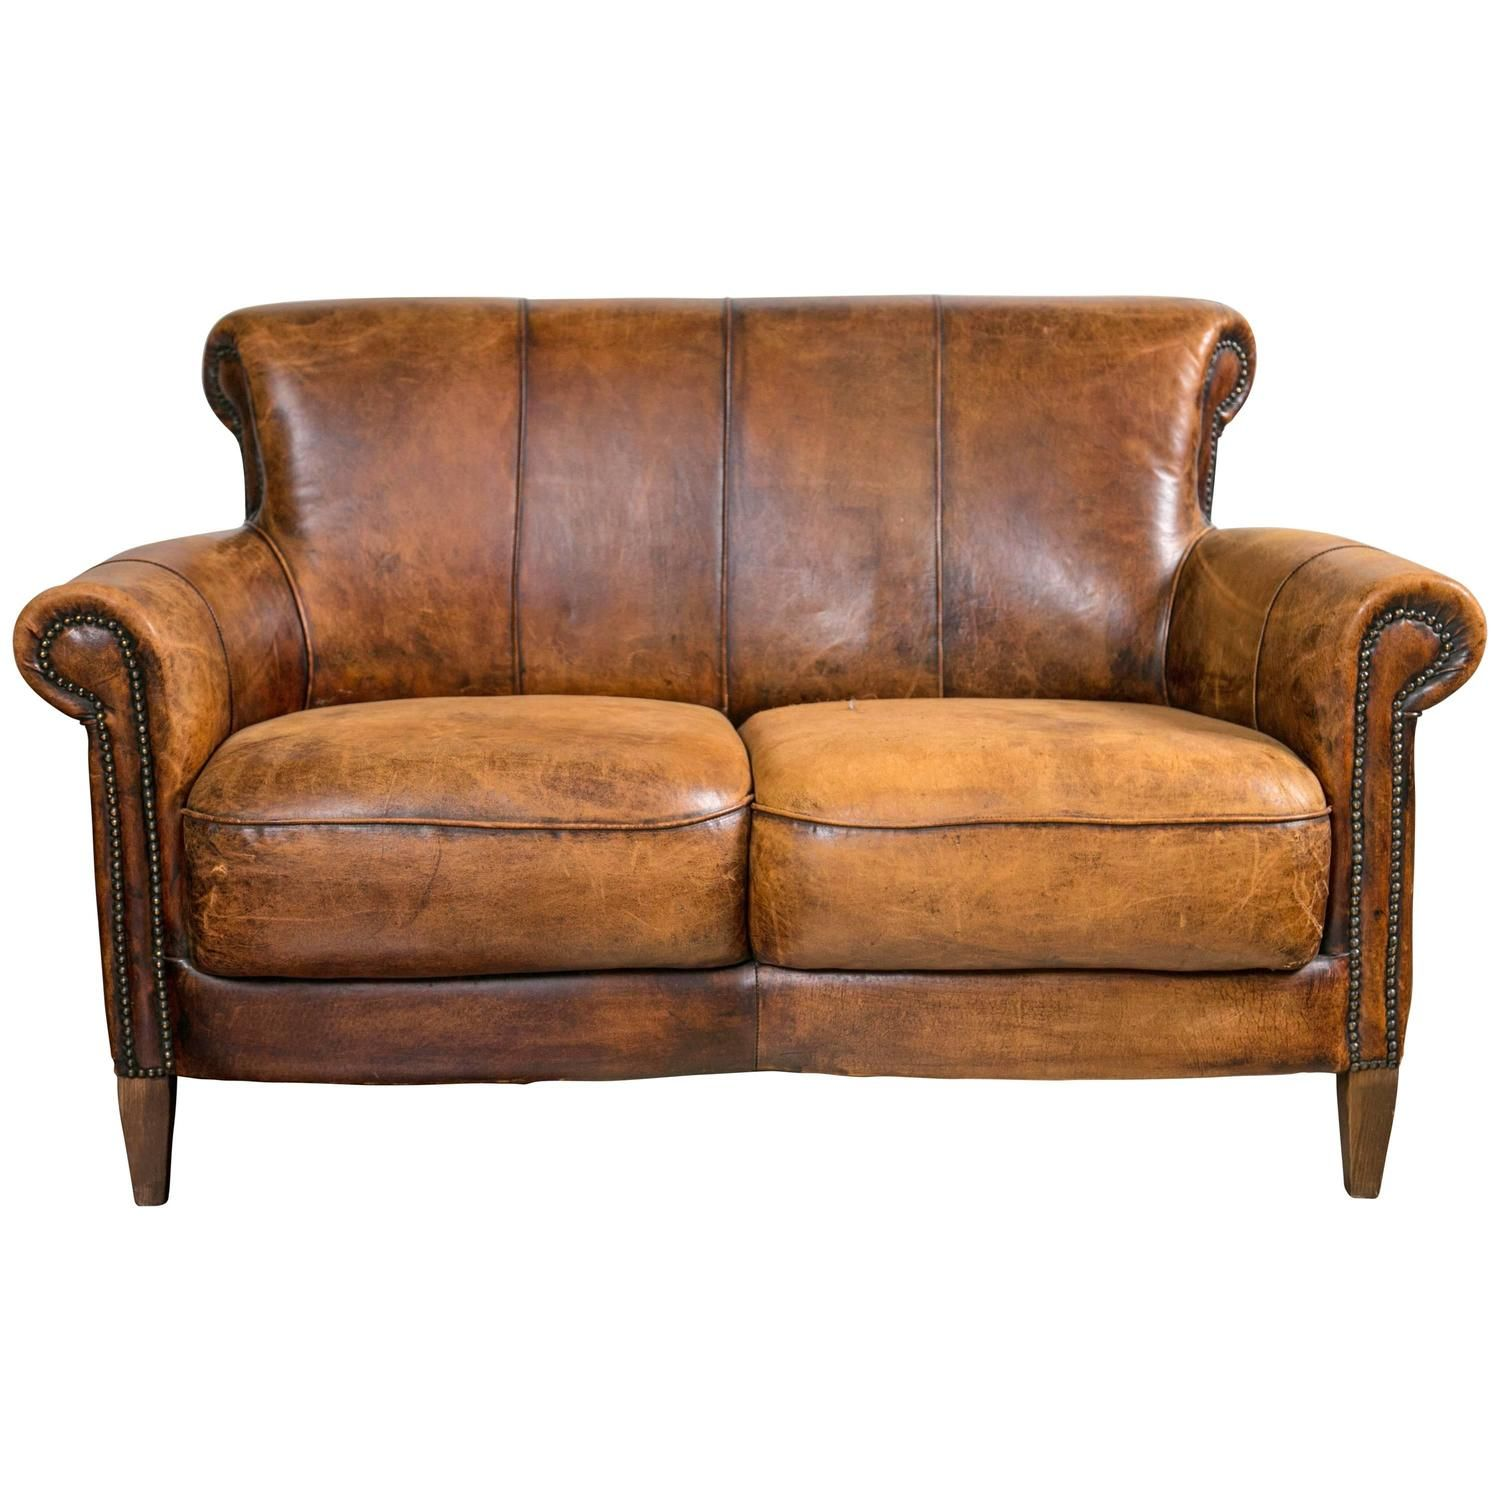 Vintage french distressed art deco leather sofa 1